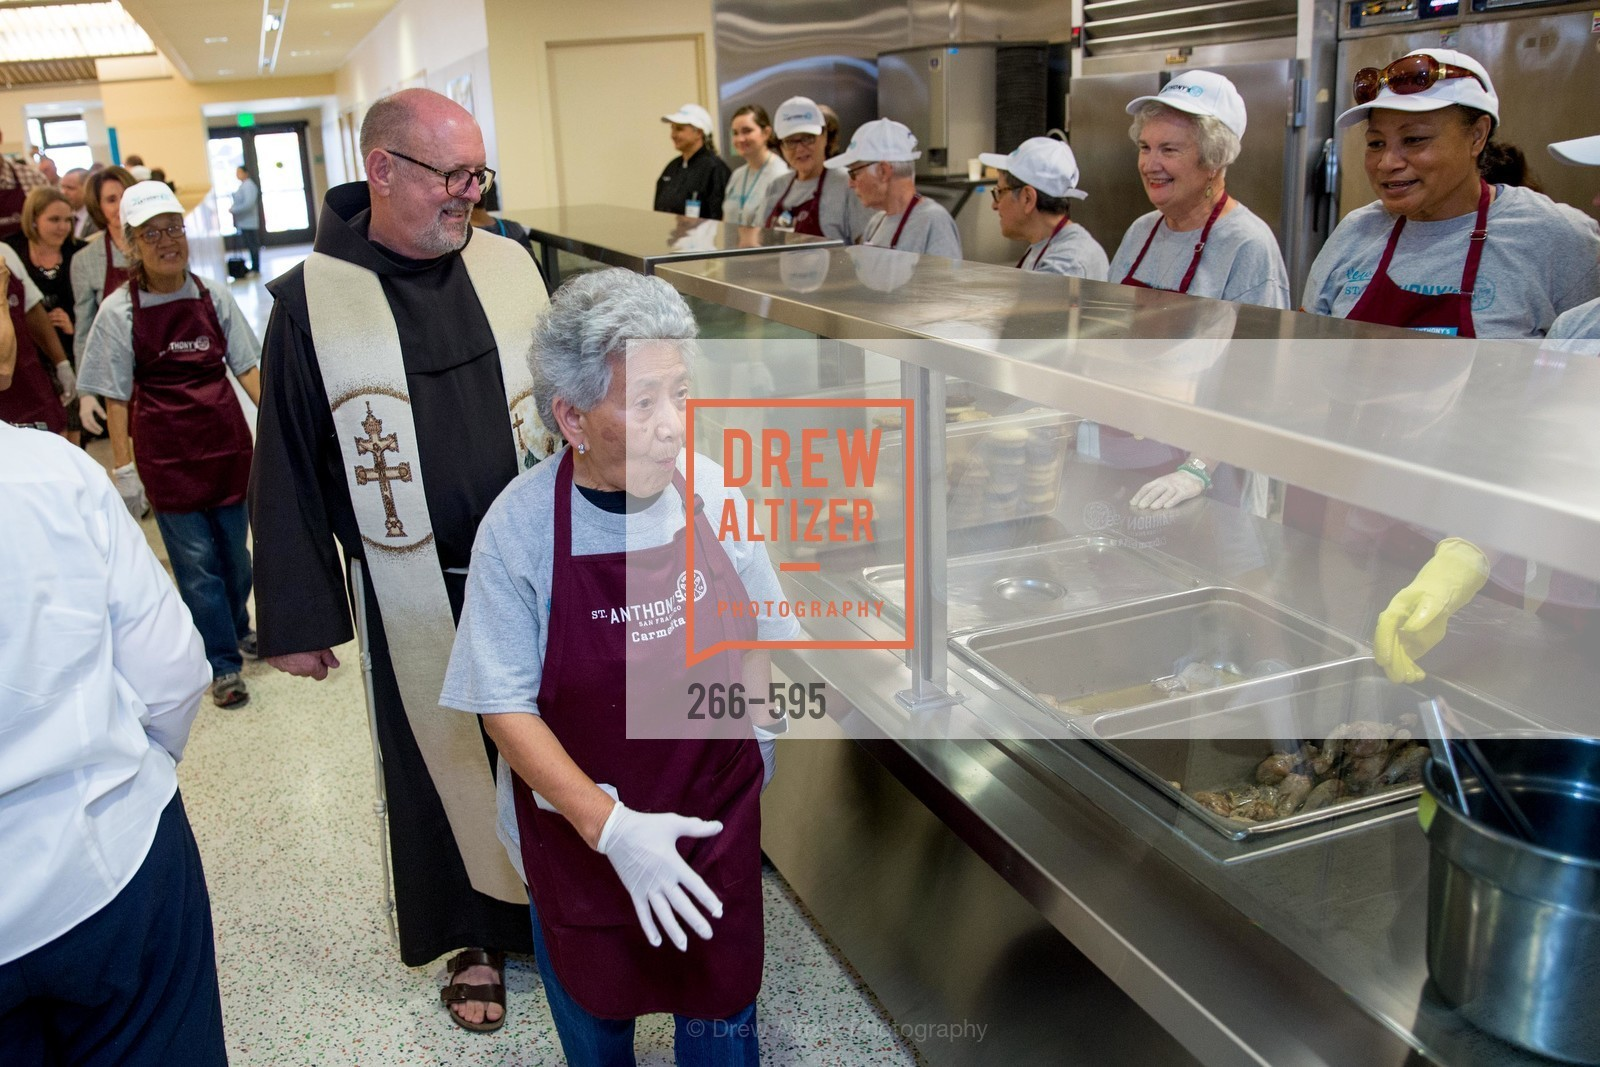 Father John Hardin, Carmelita Lozano, ST. ANTHONY'S Dining Room Ribbon Cutting Ceremony, US, October 4th, 2014,Drew Altizer, Drew Altizer Photography, full-service agency, private events, San Francisco photographer, photographer california